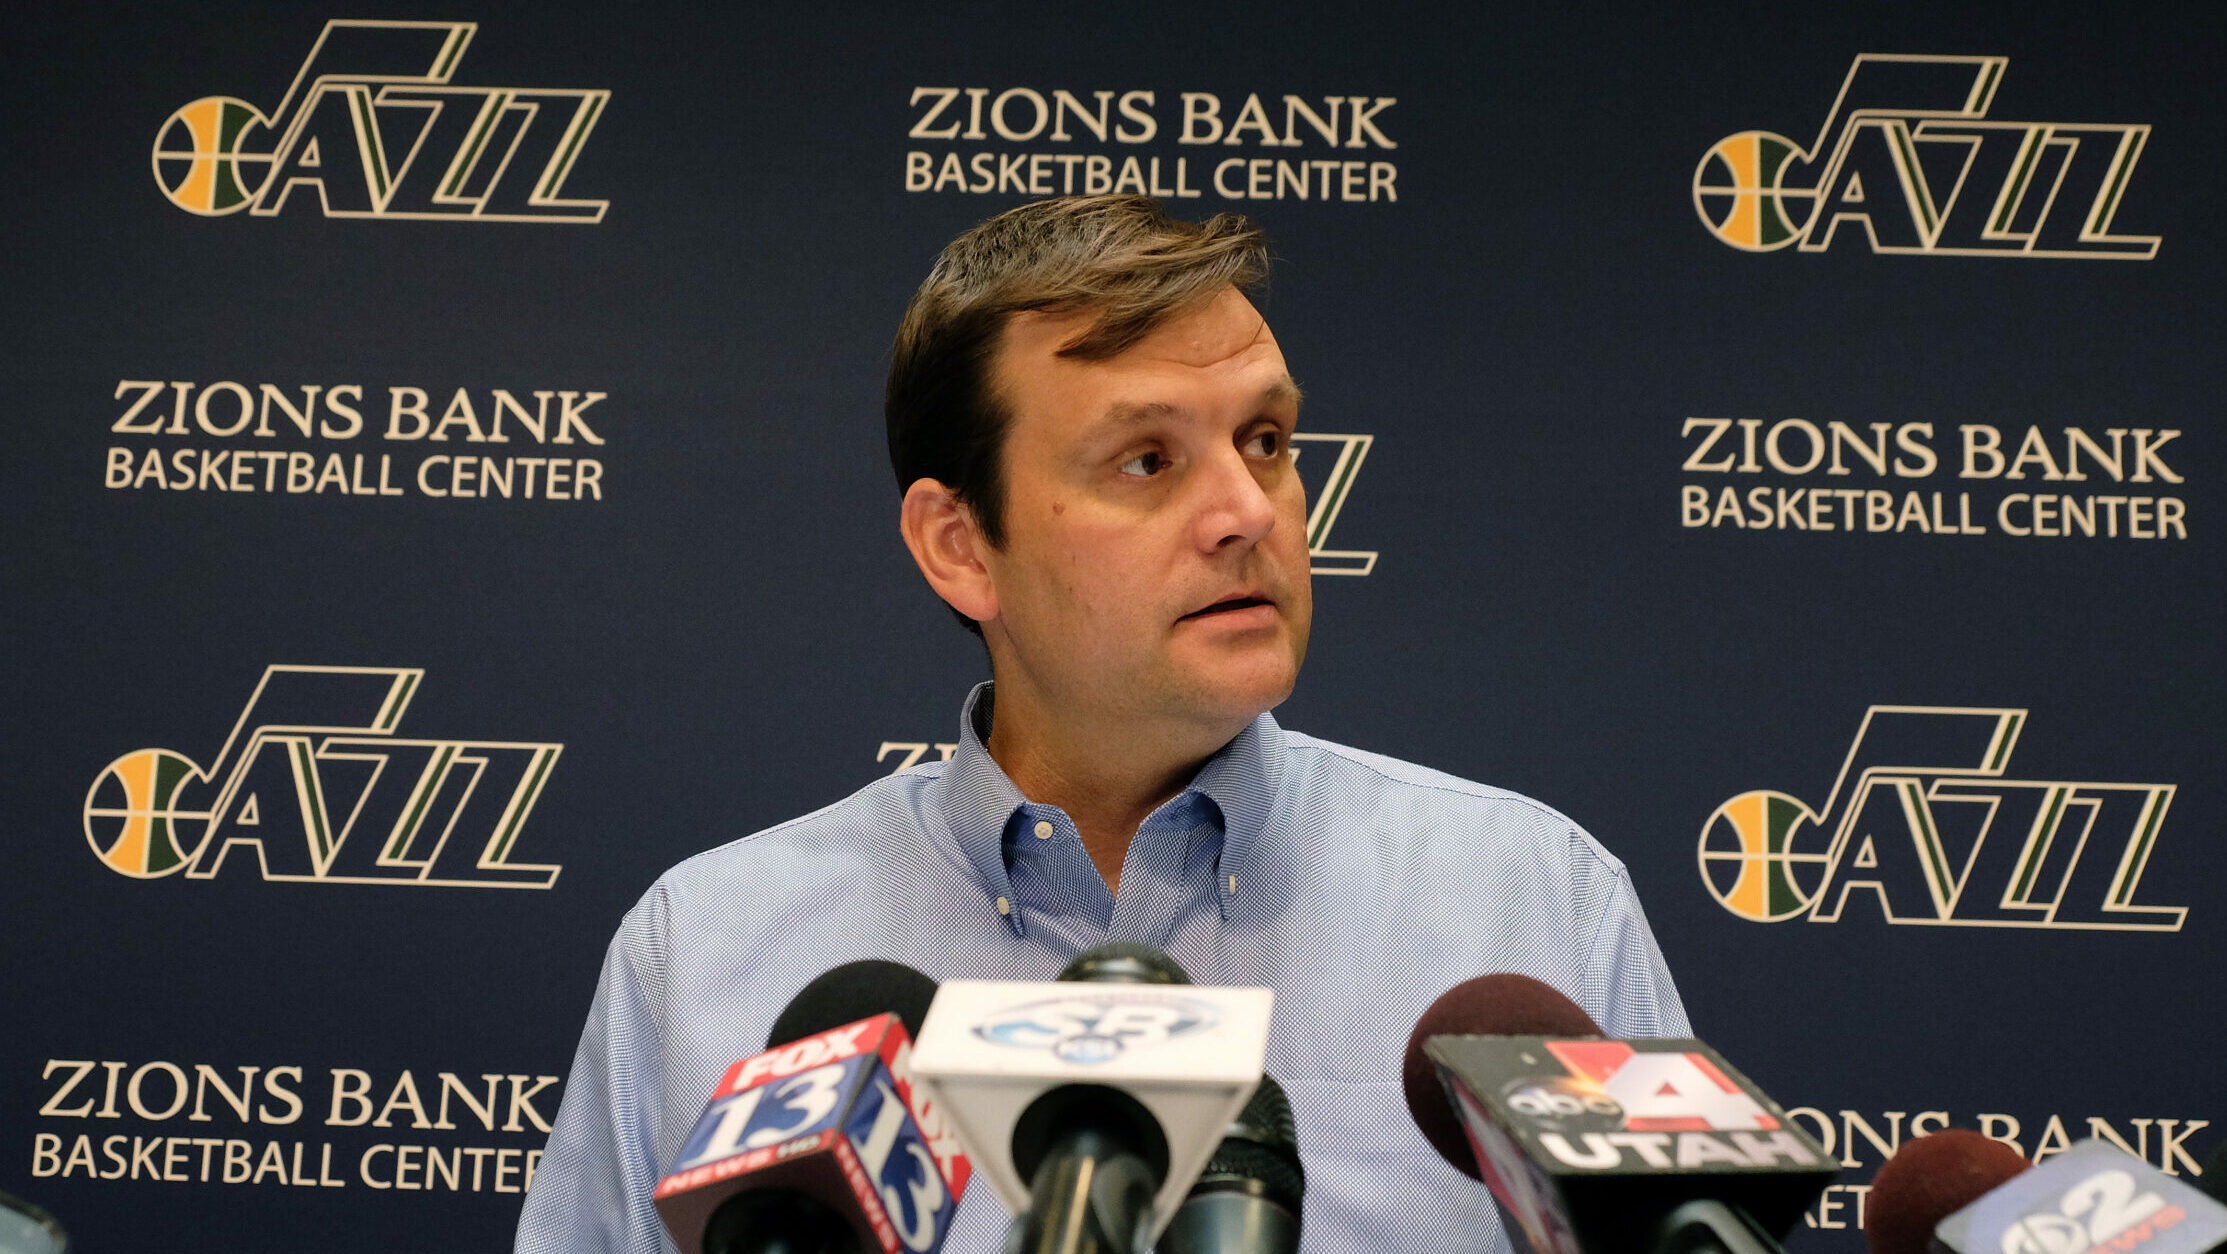 Jazz say they will investigate allegation of bigoted comment